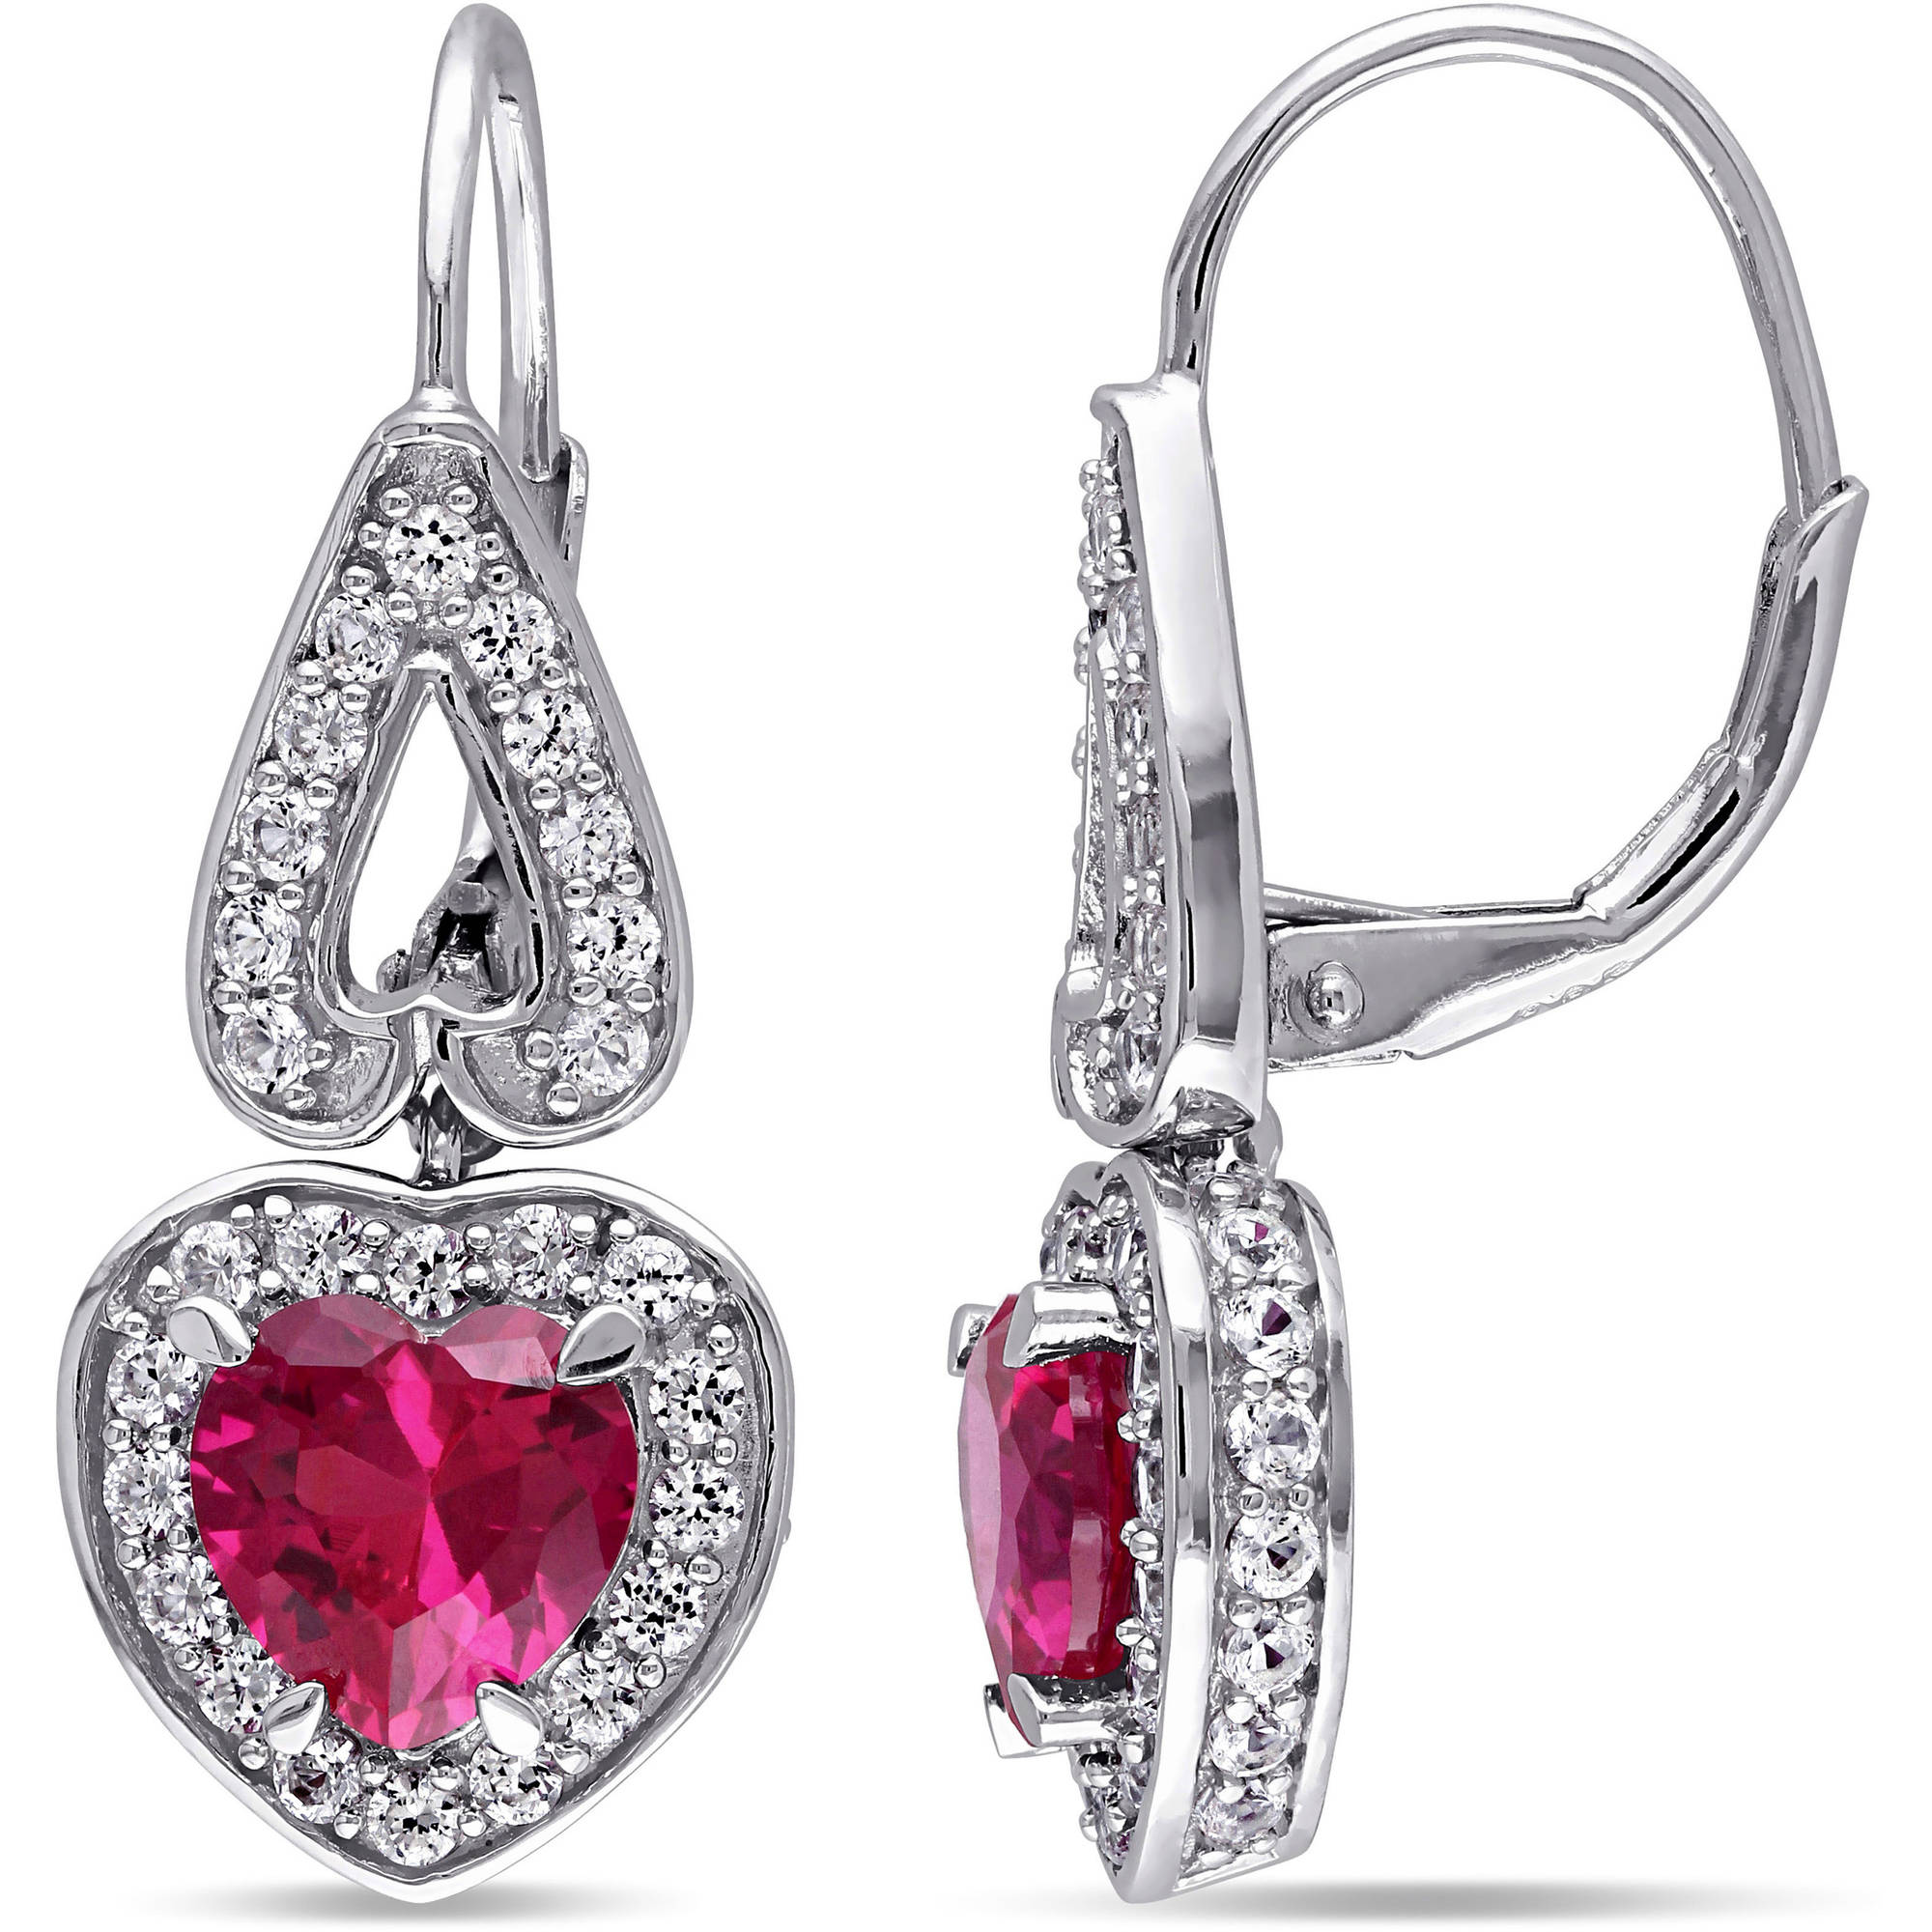 Tangelo 4-7/8 Carat T.G.W. Created Ruby and Created White Sapphire Sterling Silver Halo Heart Earrings